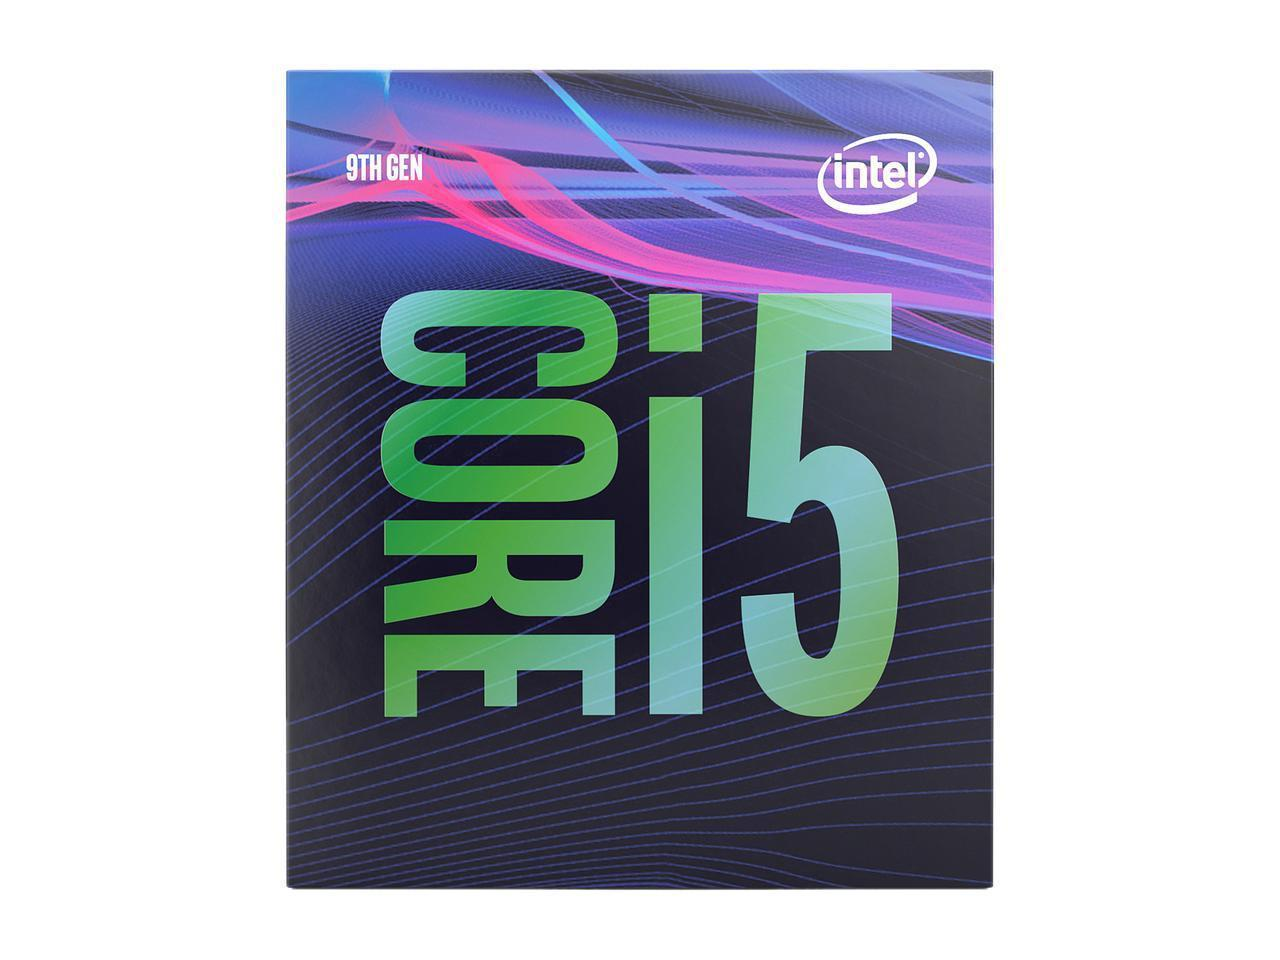 Процесор Intel Coffee Lake Core i5-9400 2.9GHz (up to 4.10GHz ), 9MB, 65W LGA1151 (300 Series)-1